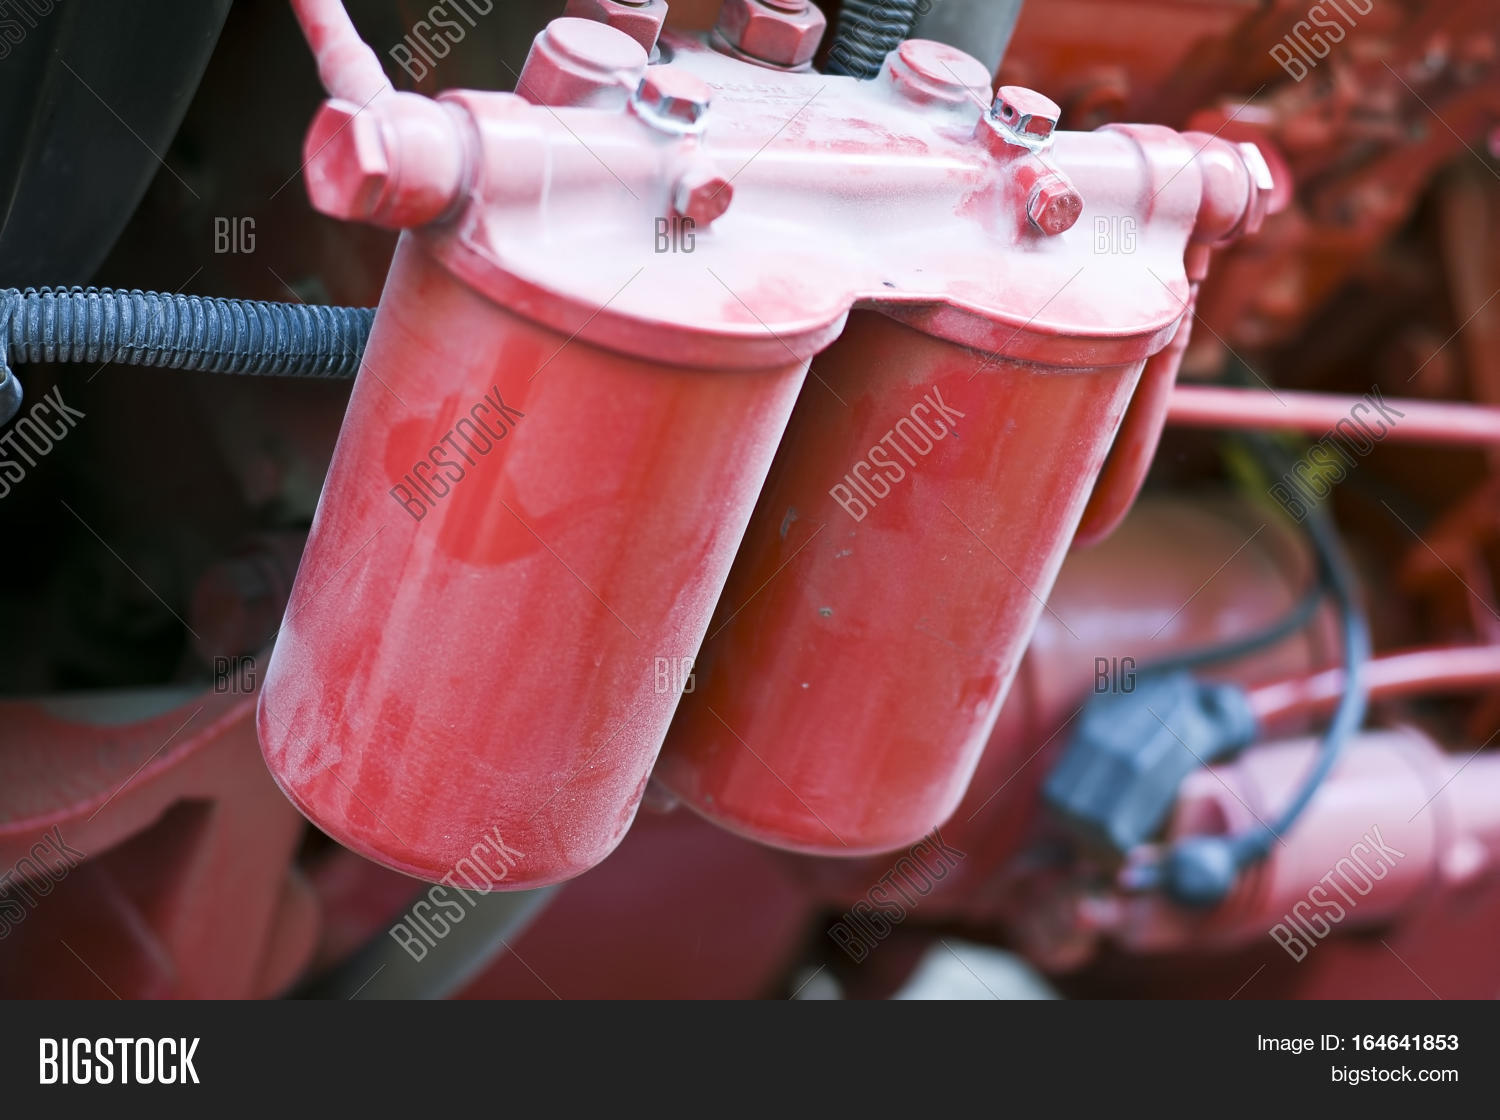 Parts Tractor Engine Image & Photo (Free Trial)   Bigstock